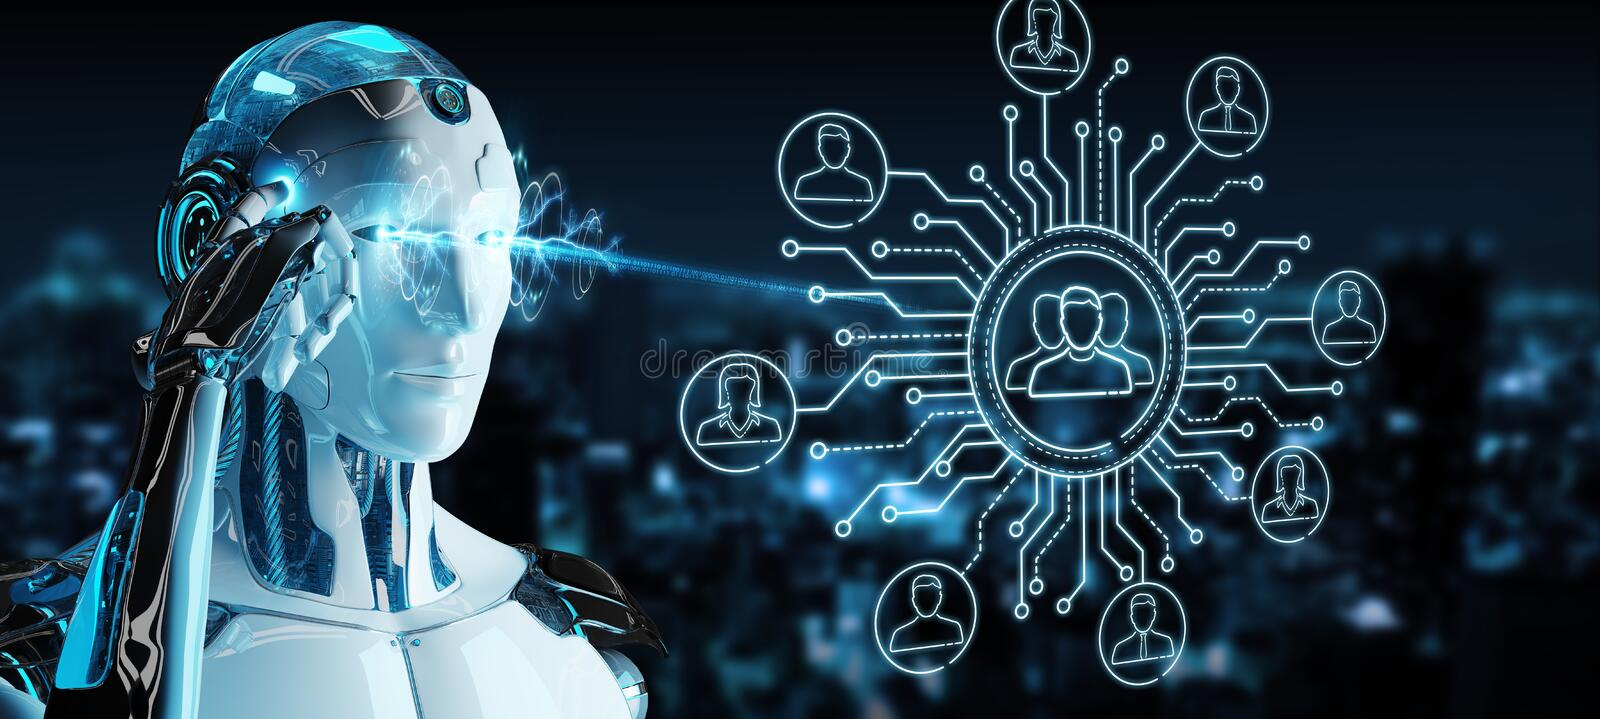 White robot controlling social network icons interface stock illustration